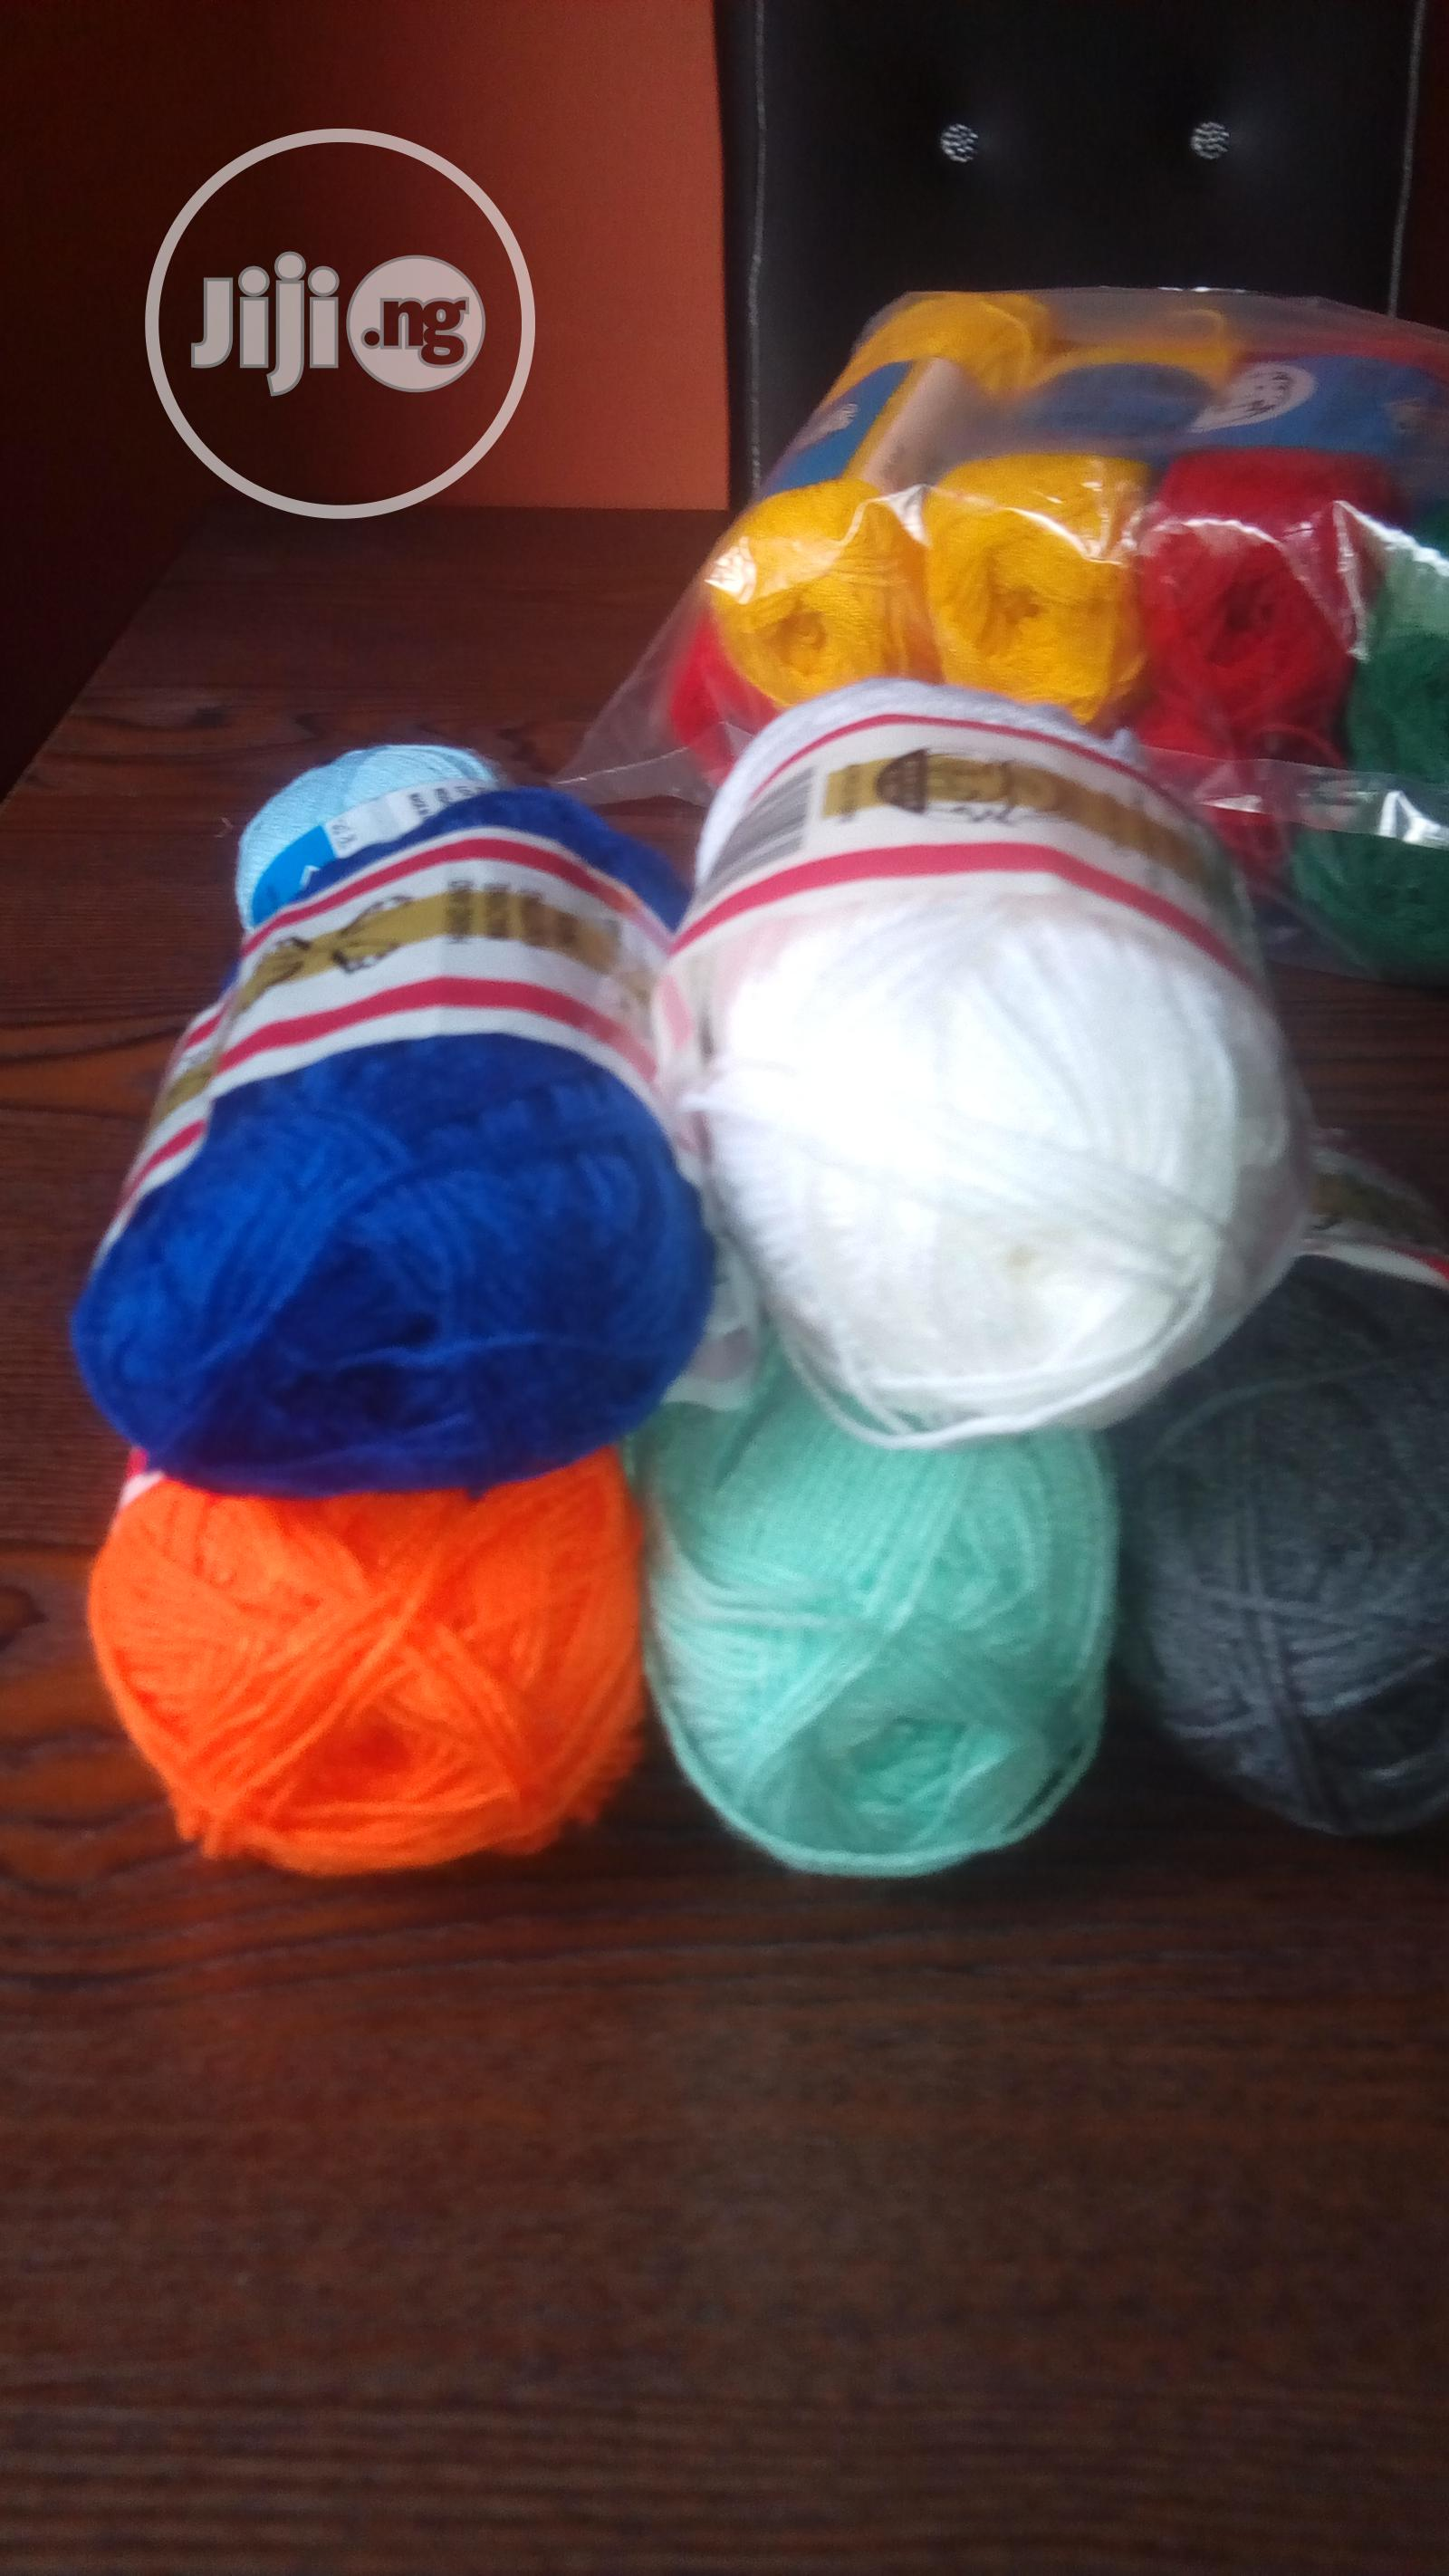 Archive: Yeye Wool in Port-Harcourt